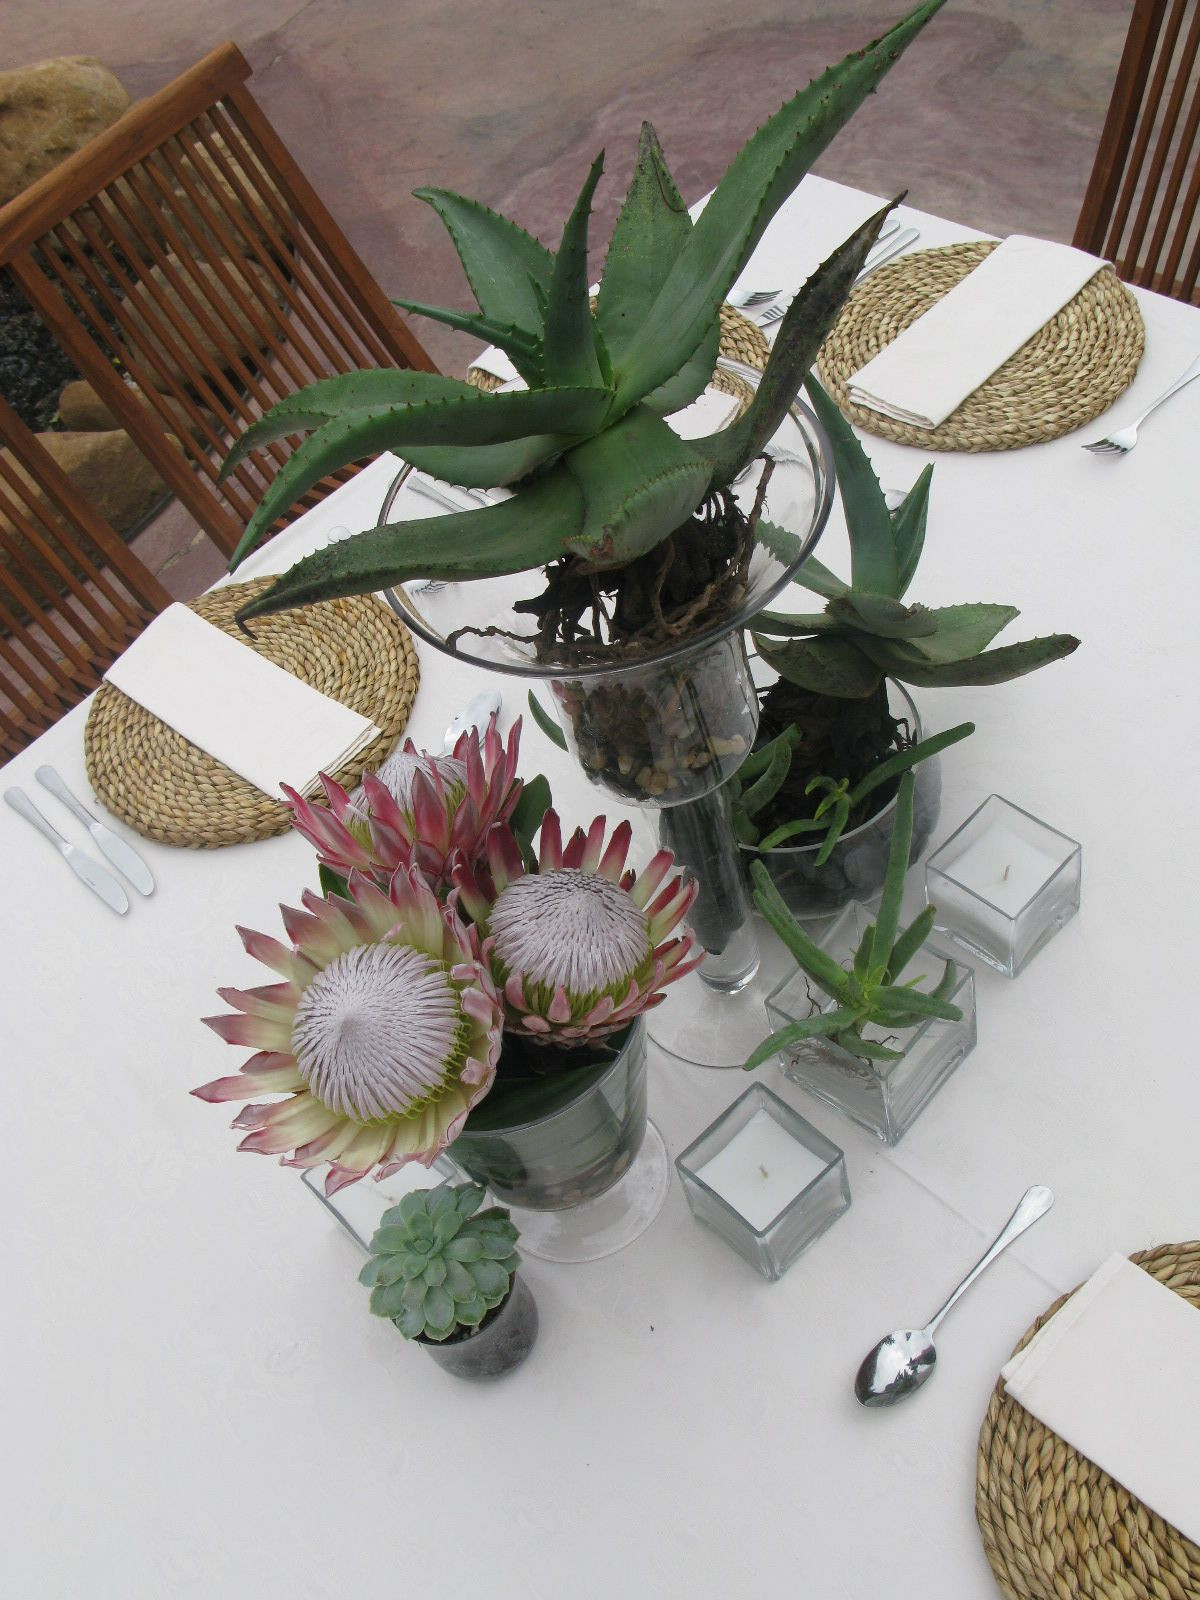 Succulent Aloes and Protea s